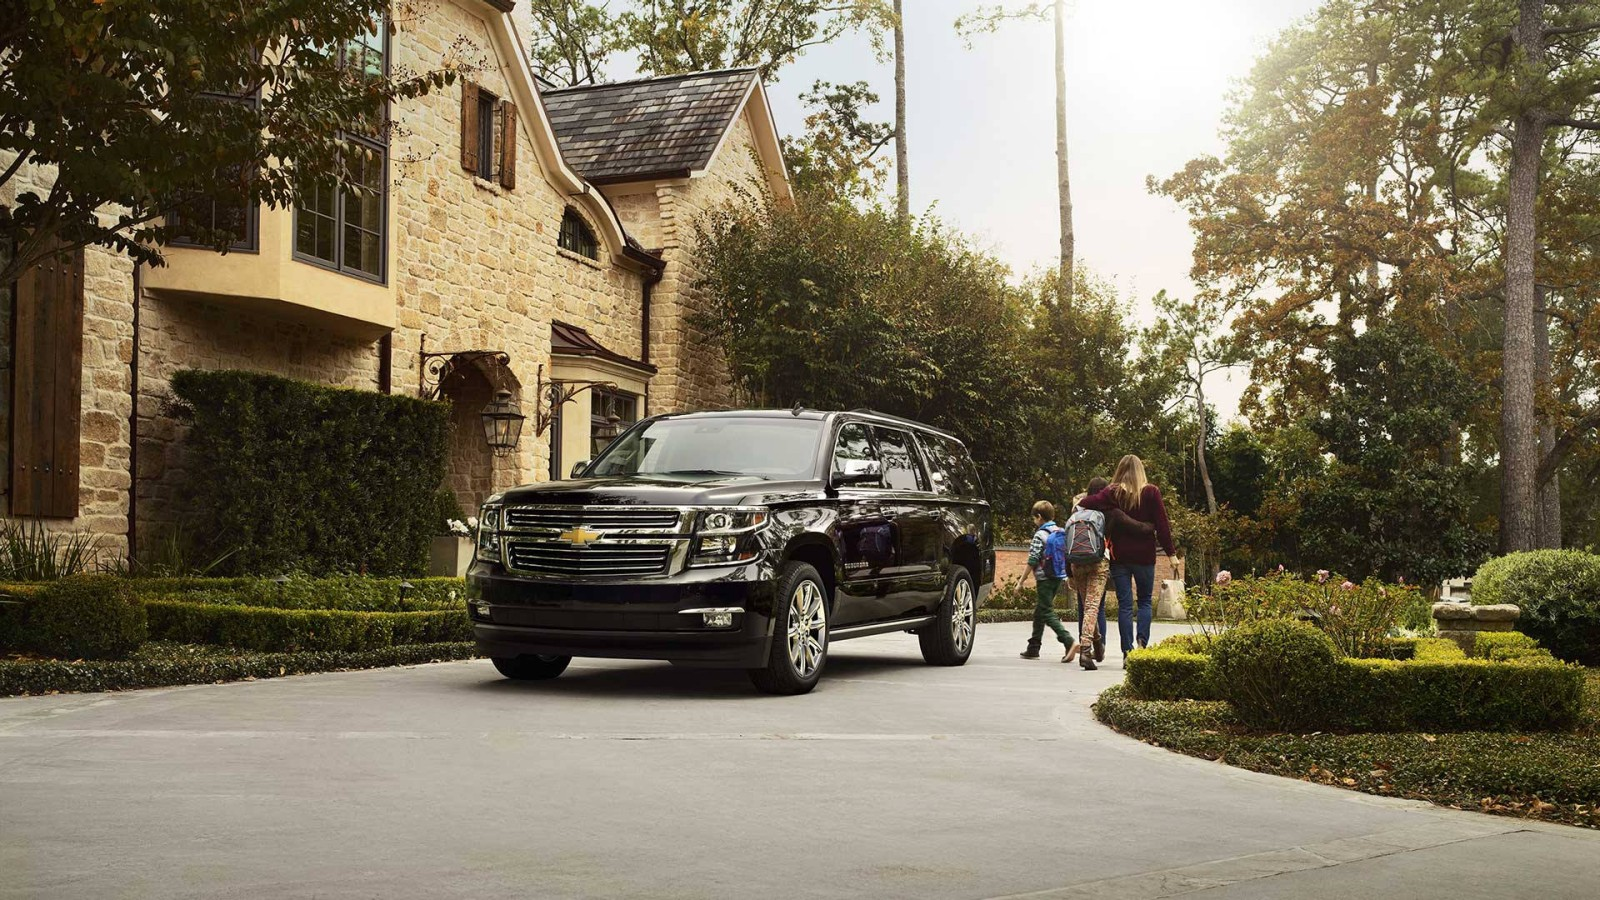 2017 Chevrolet Suburban for Sale in Chantilly, VA